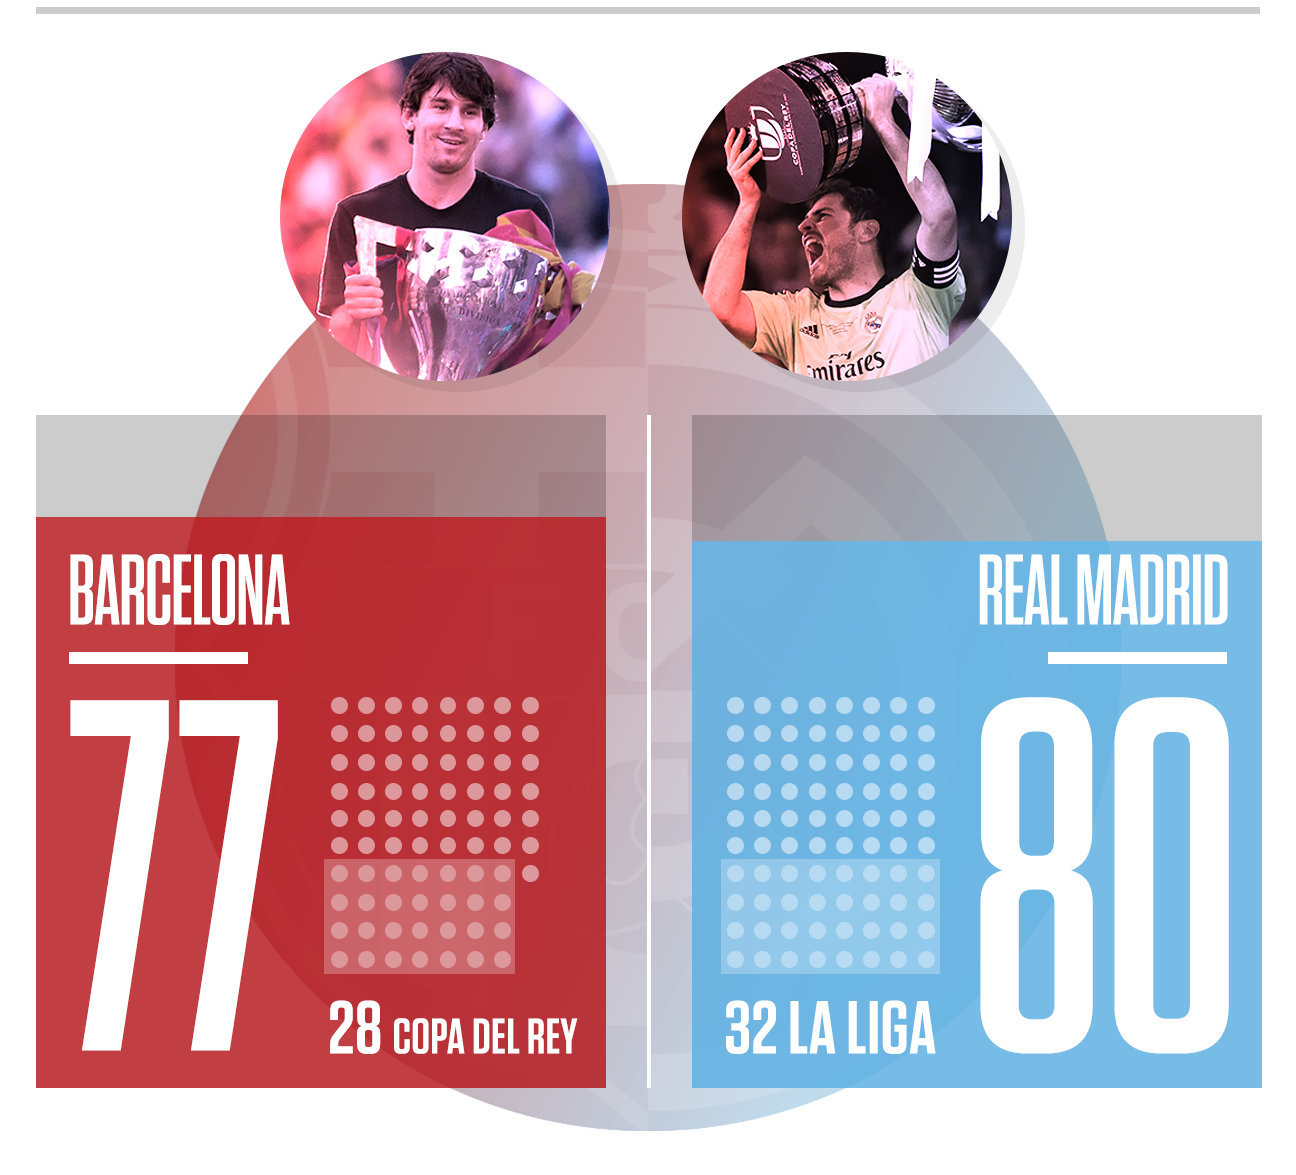 El Clasico Just How Big Is The Rivalry Between Barcelona And Real